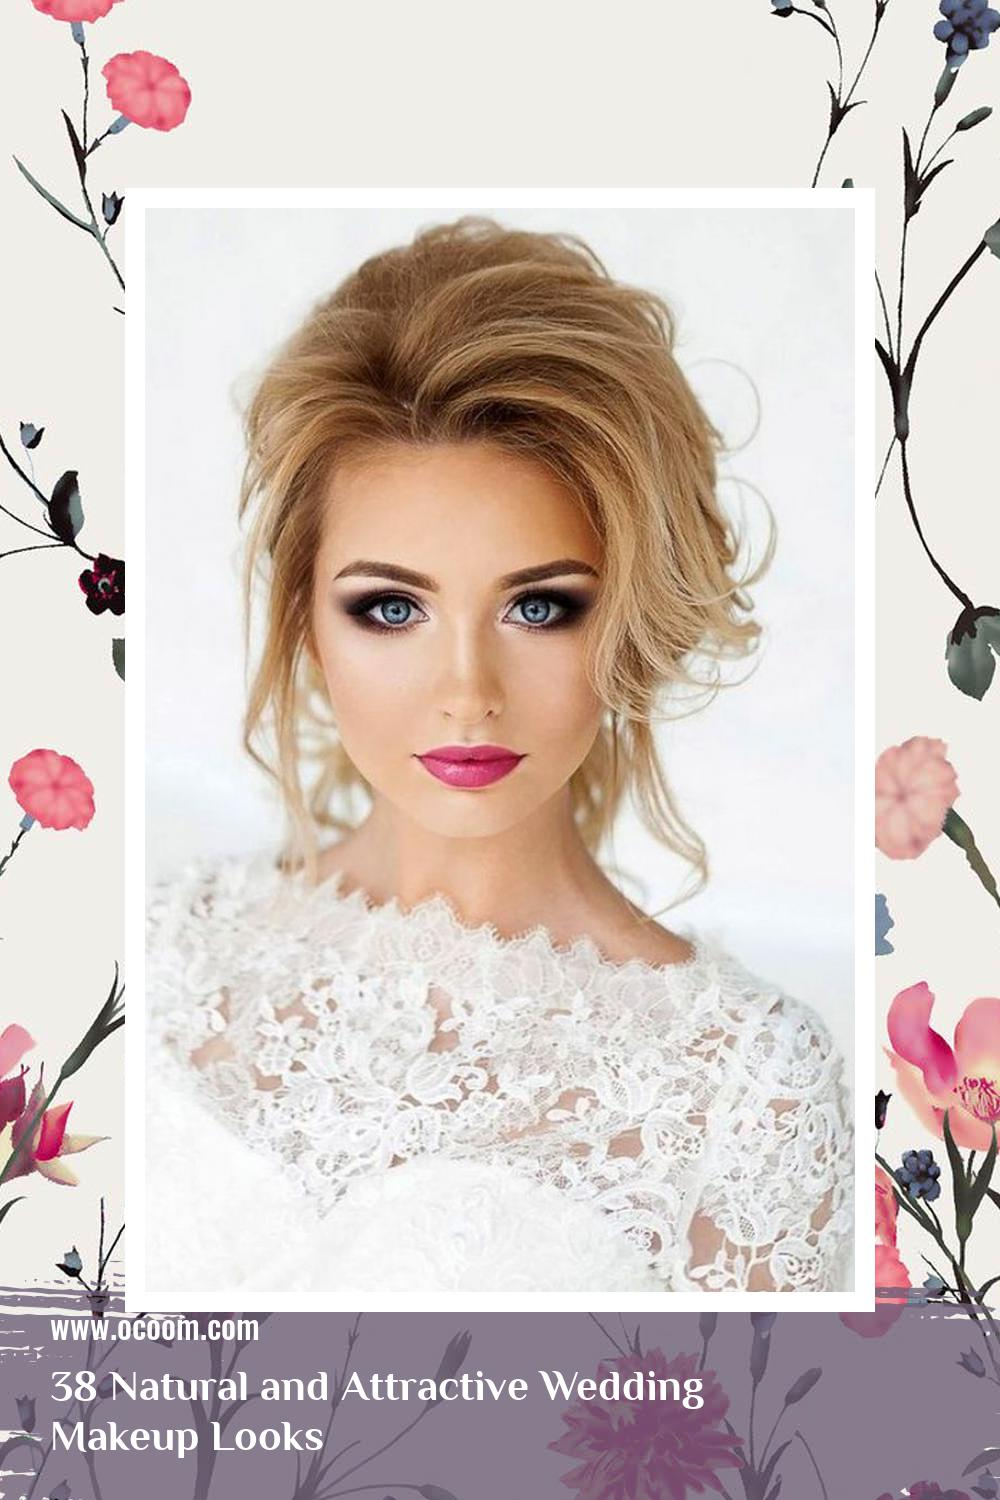 38 Natural and Attractive Wedding Makeup Looks 27